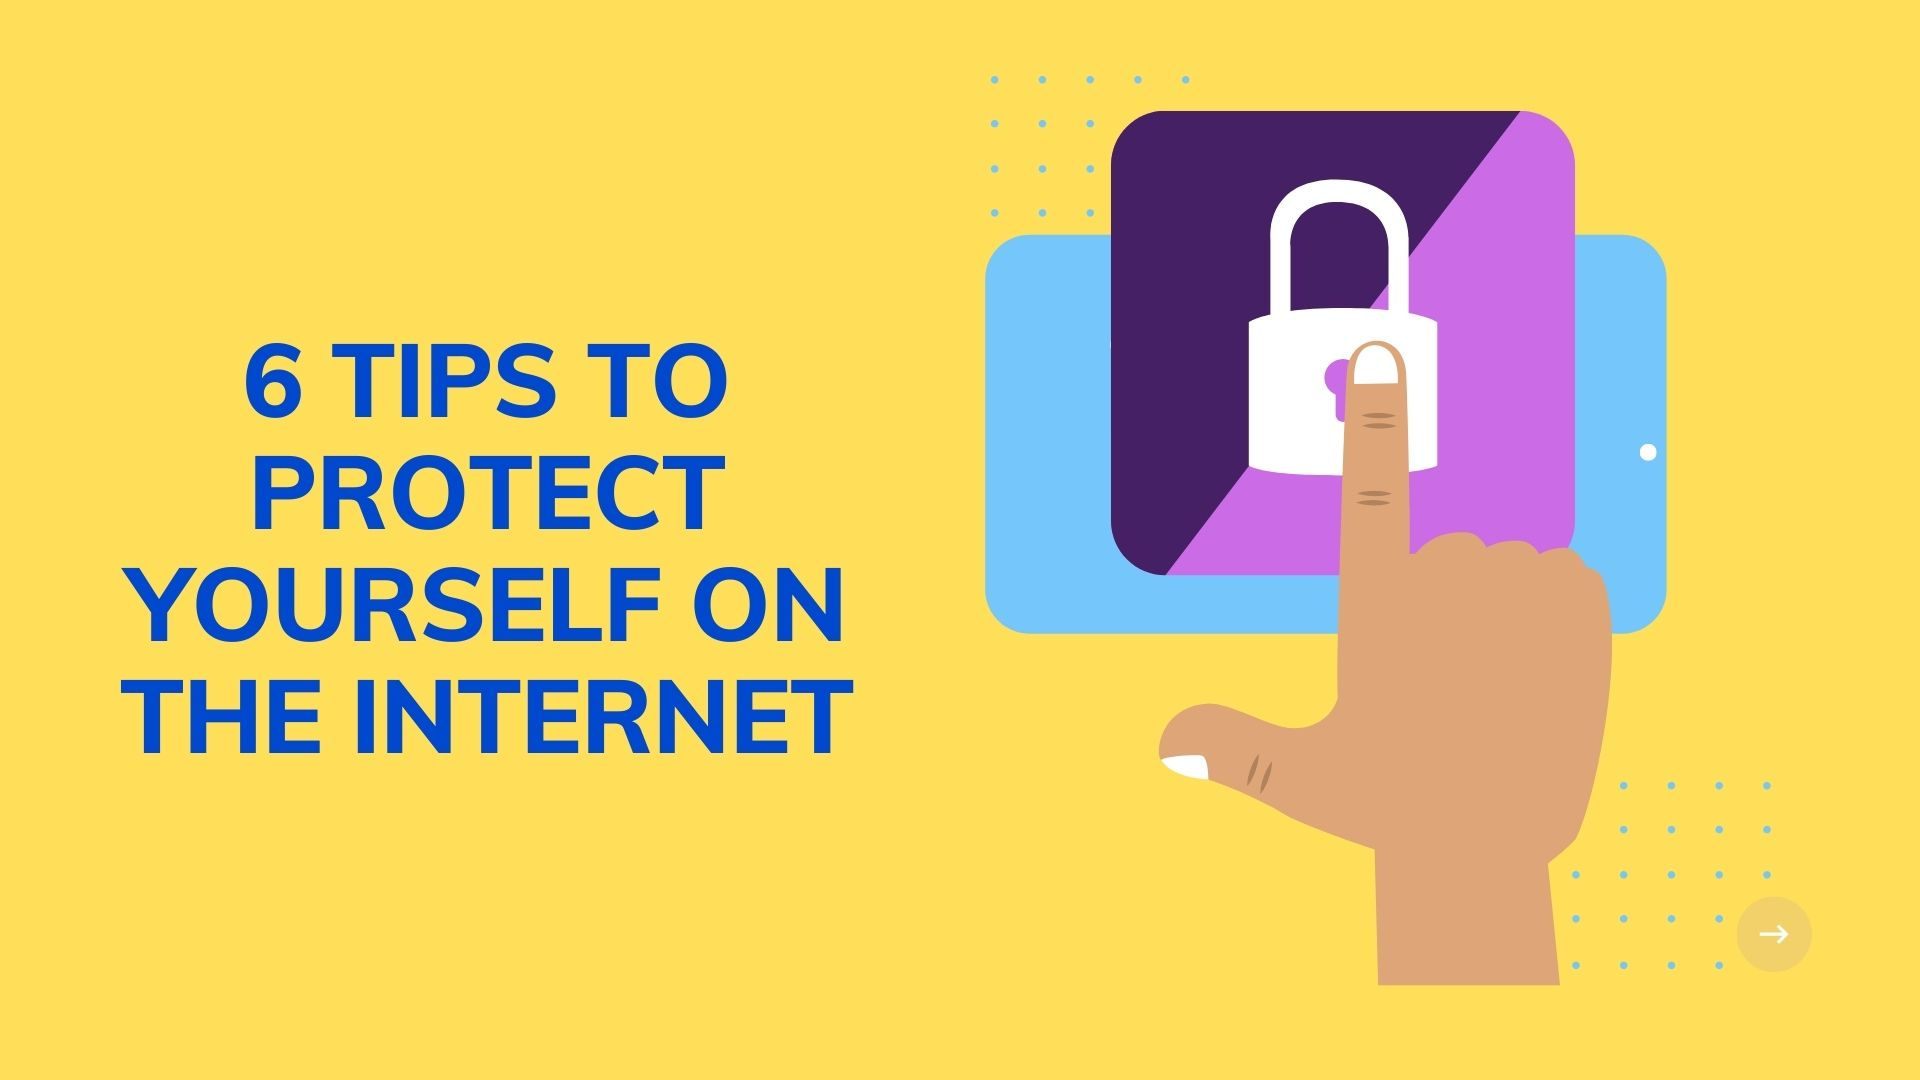 6 Tips To Protect Yourself On The Internet